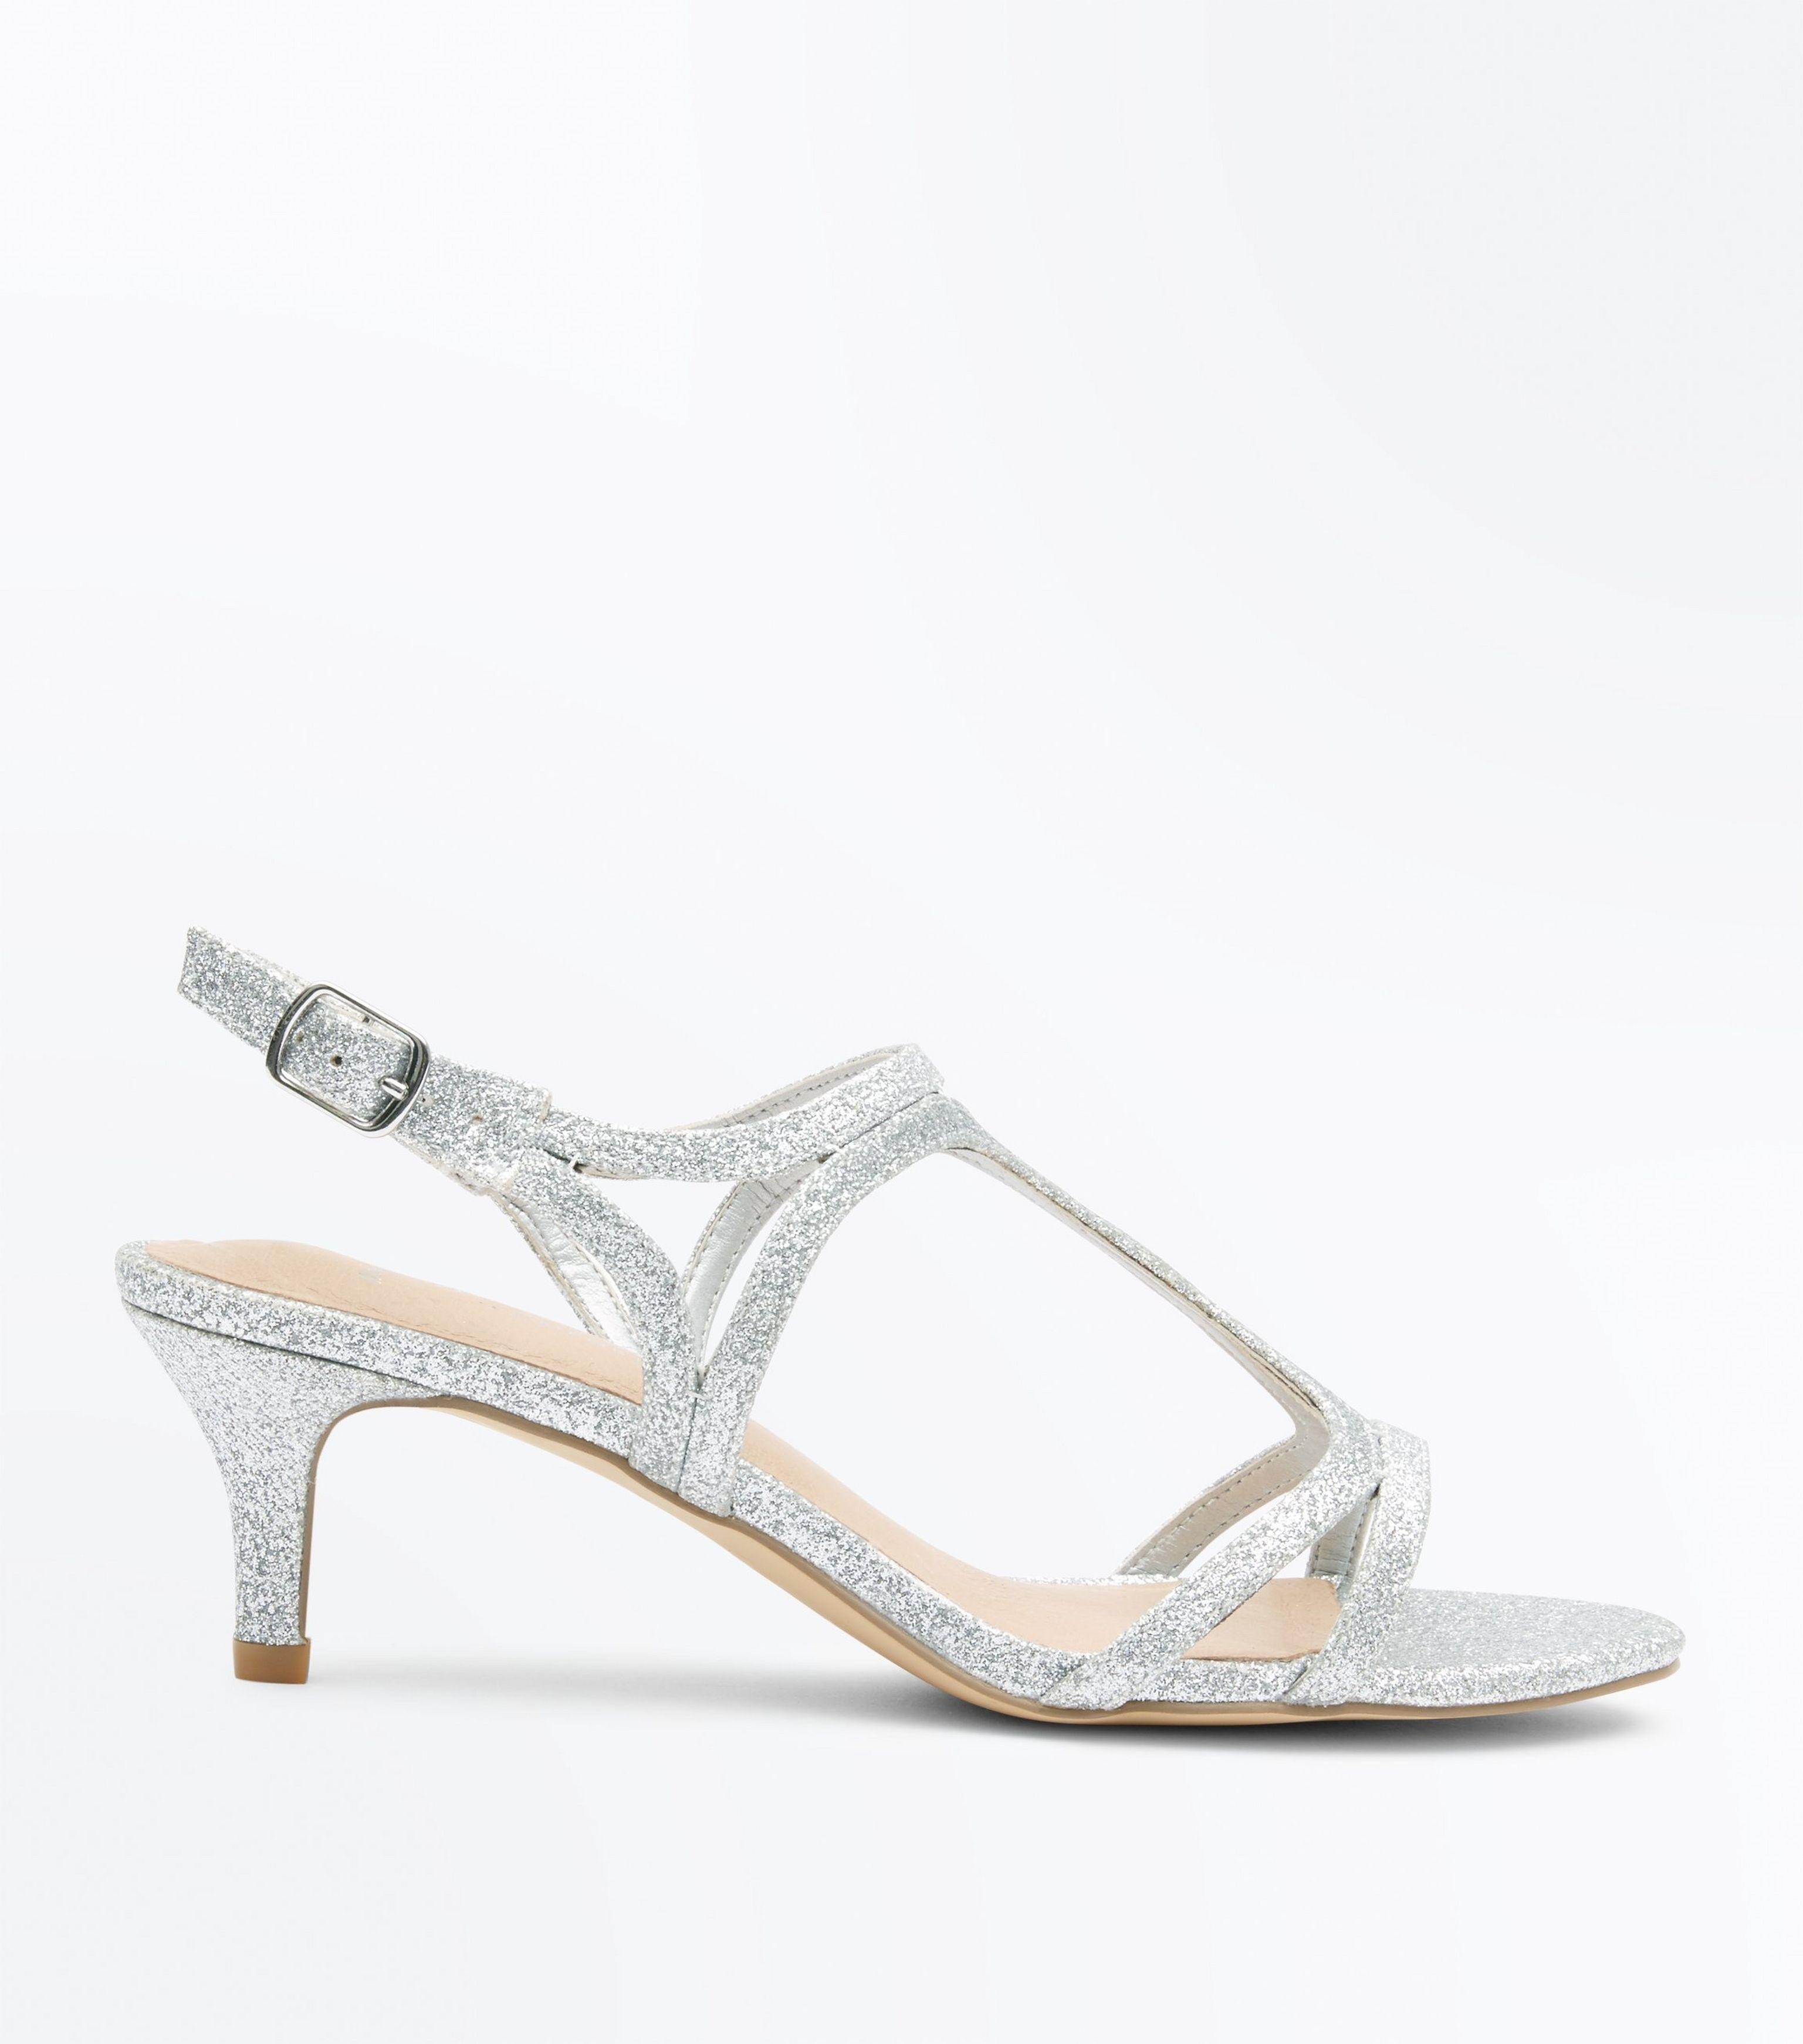 5613fee454e9f New Look Wide Fit Silver Glitter Comfort Kitten Heel Sandals in ...